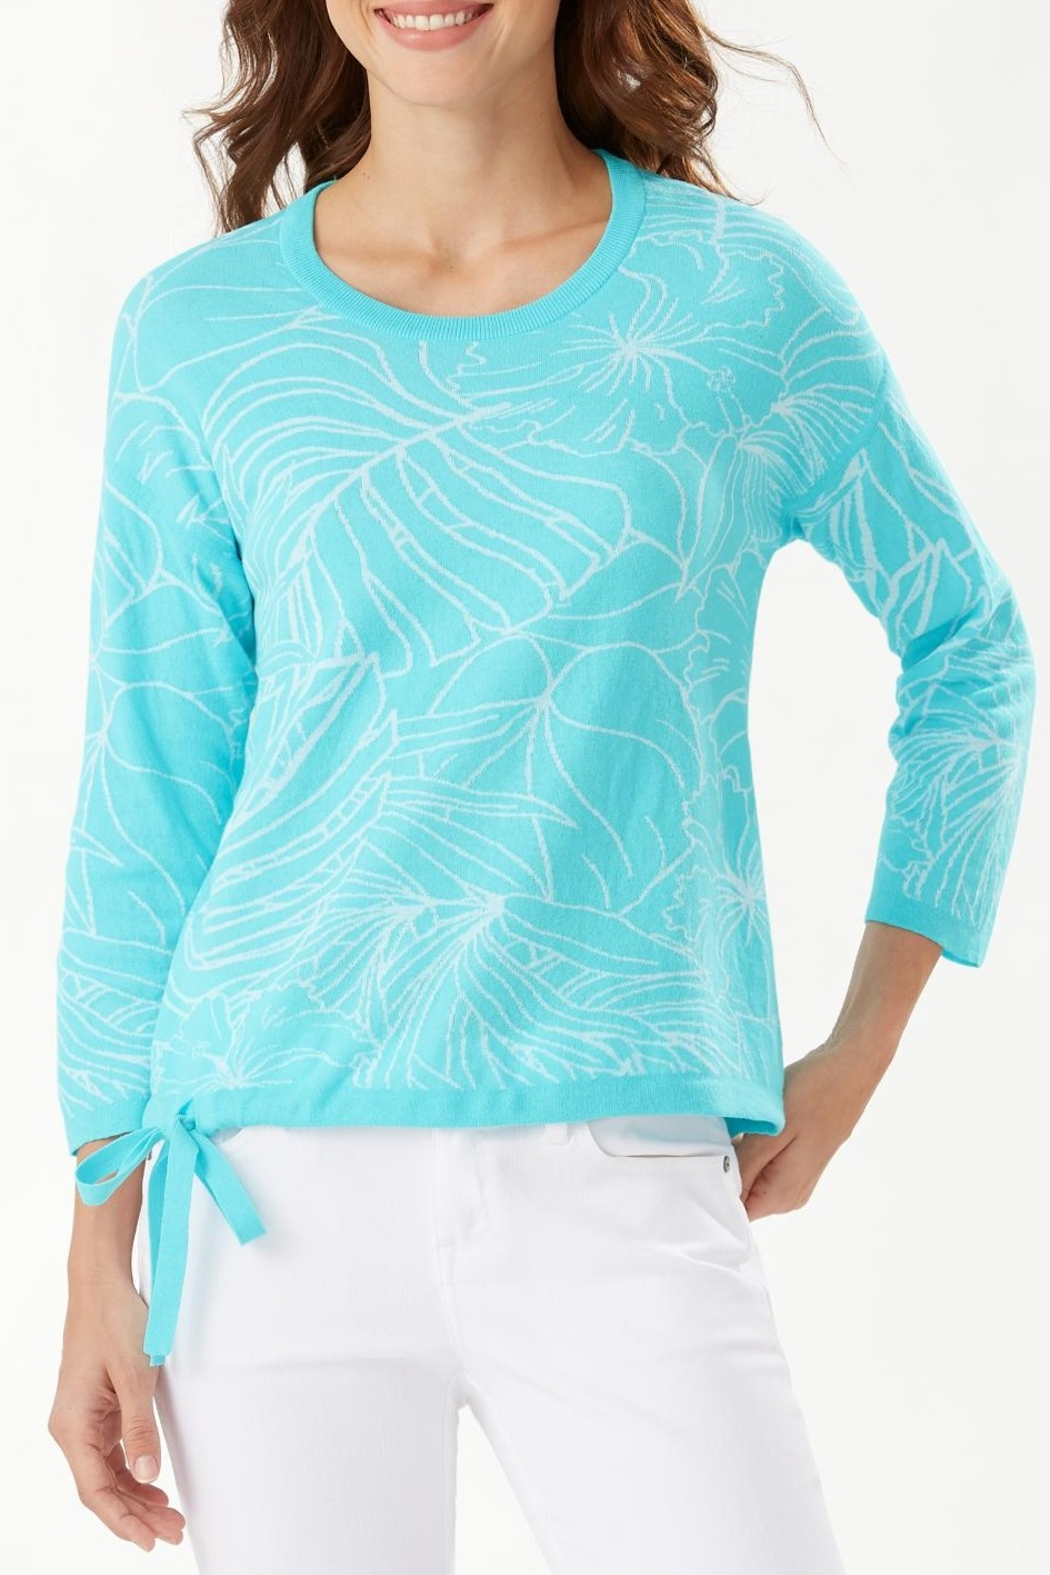 Tommy Bahama Island Bloom Jacquard Tie Sweater - Front Cropped Image